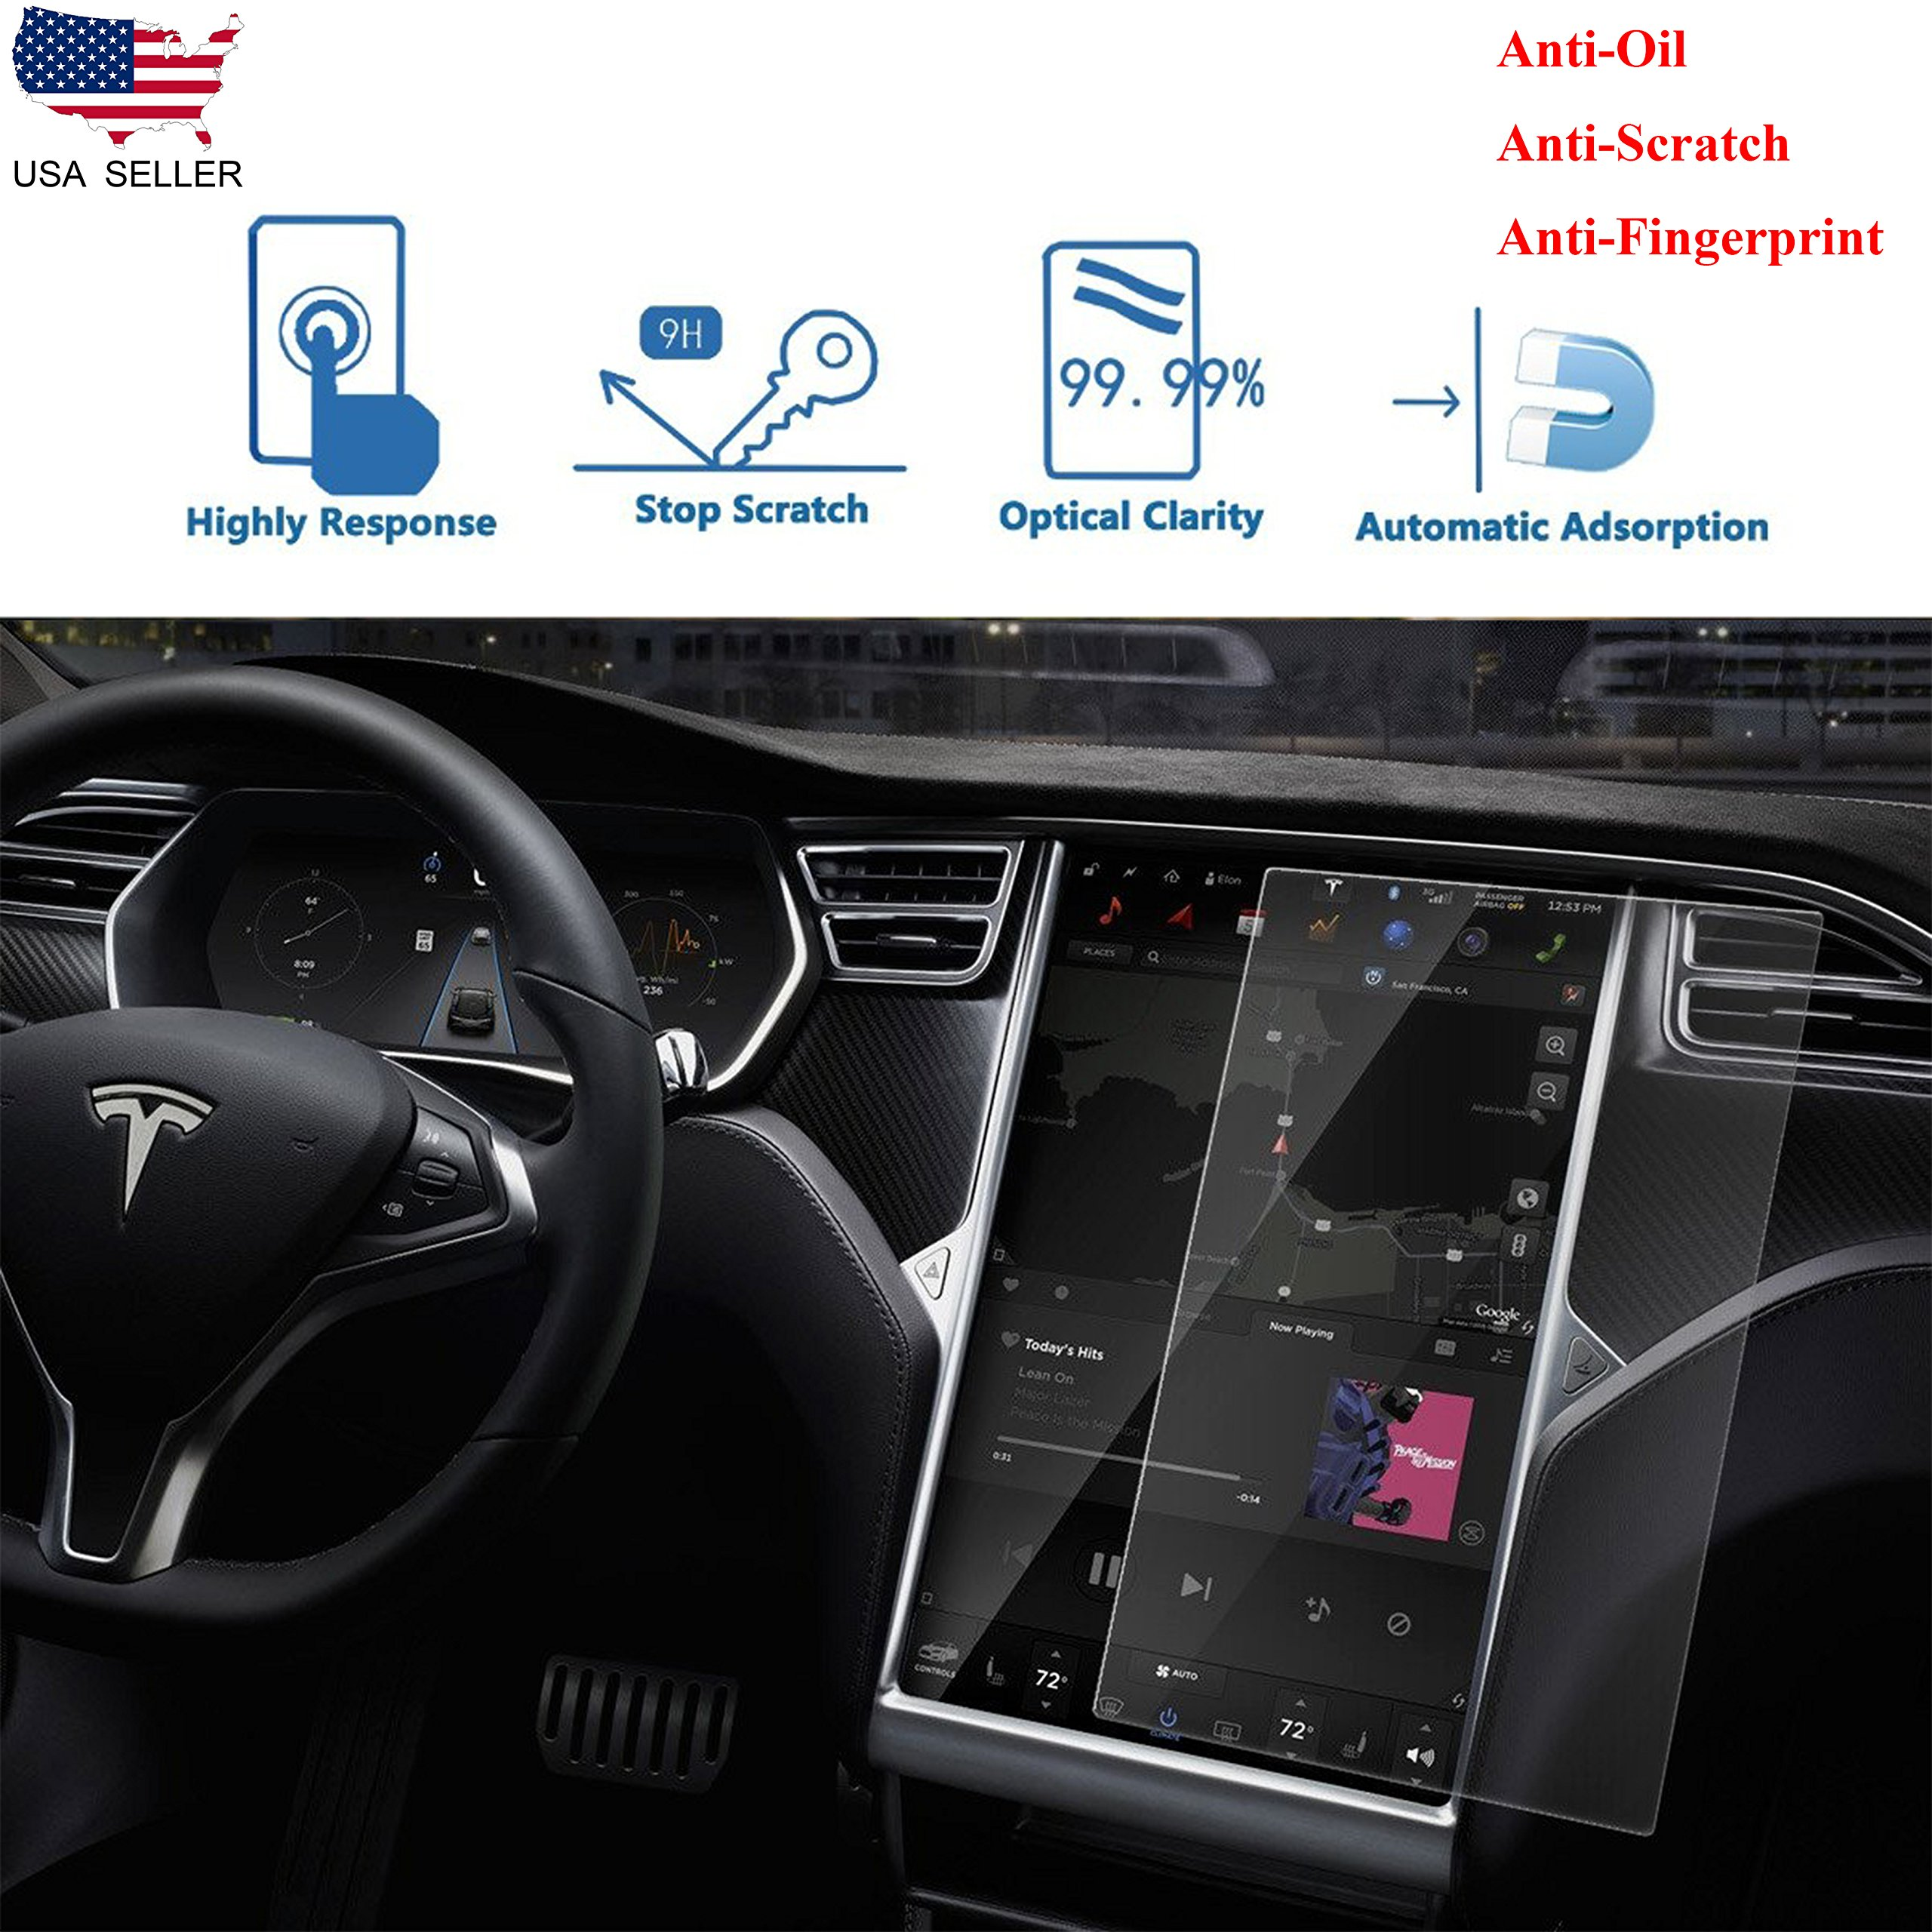 17'' Car Tempered Glass Touch Screen Protector for All Tesla Model S and Model X, 9H Anti-scratch and Shock Resistant